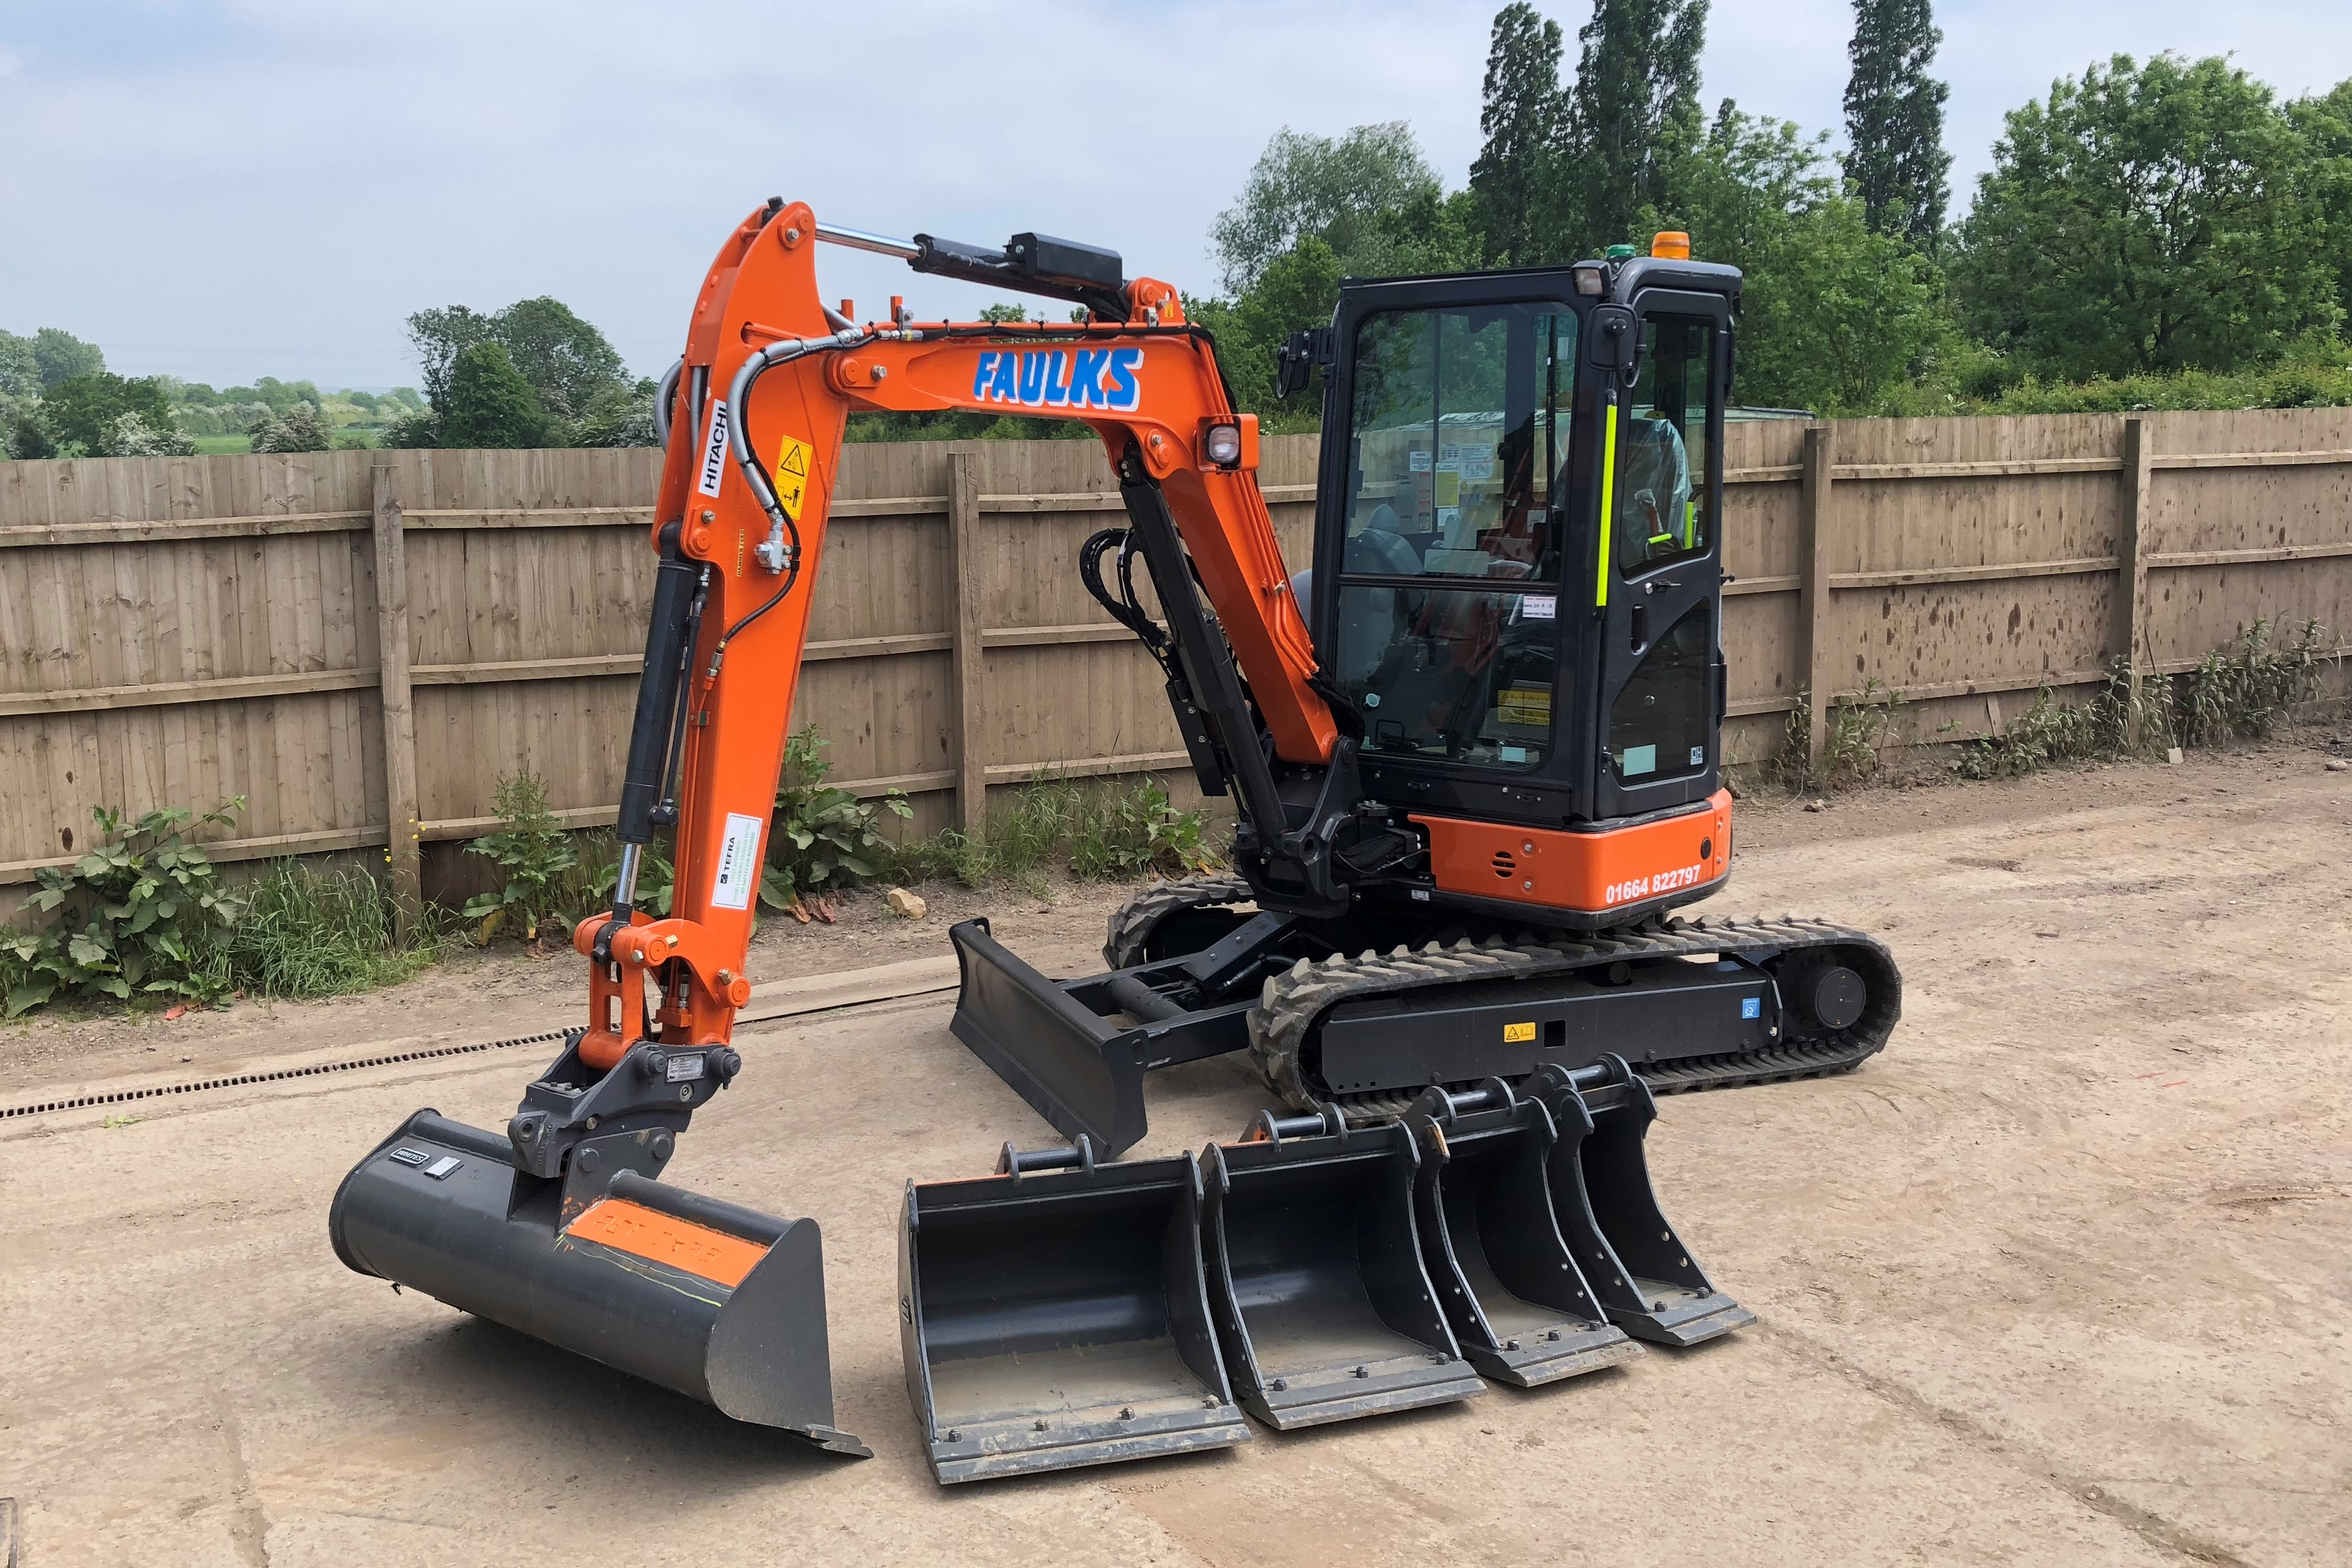 The Hitachi ZX33 tracked excavator in car park with digger head options lined up